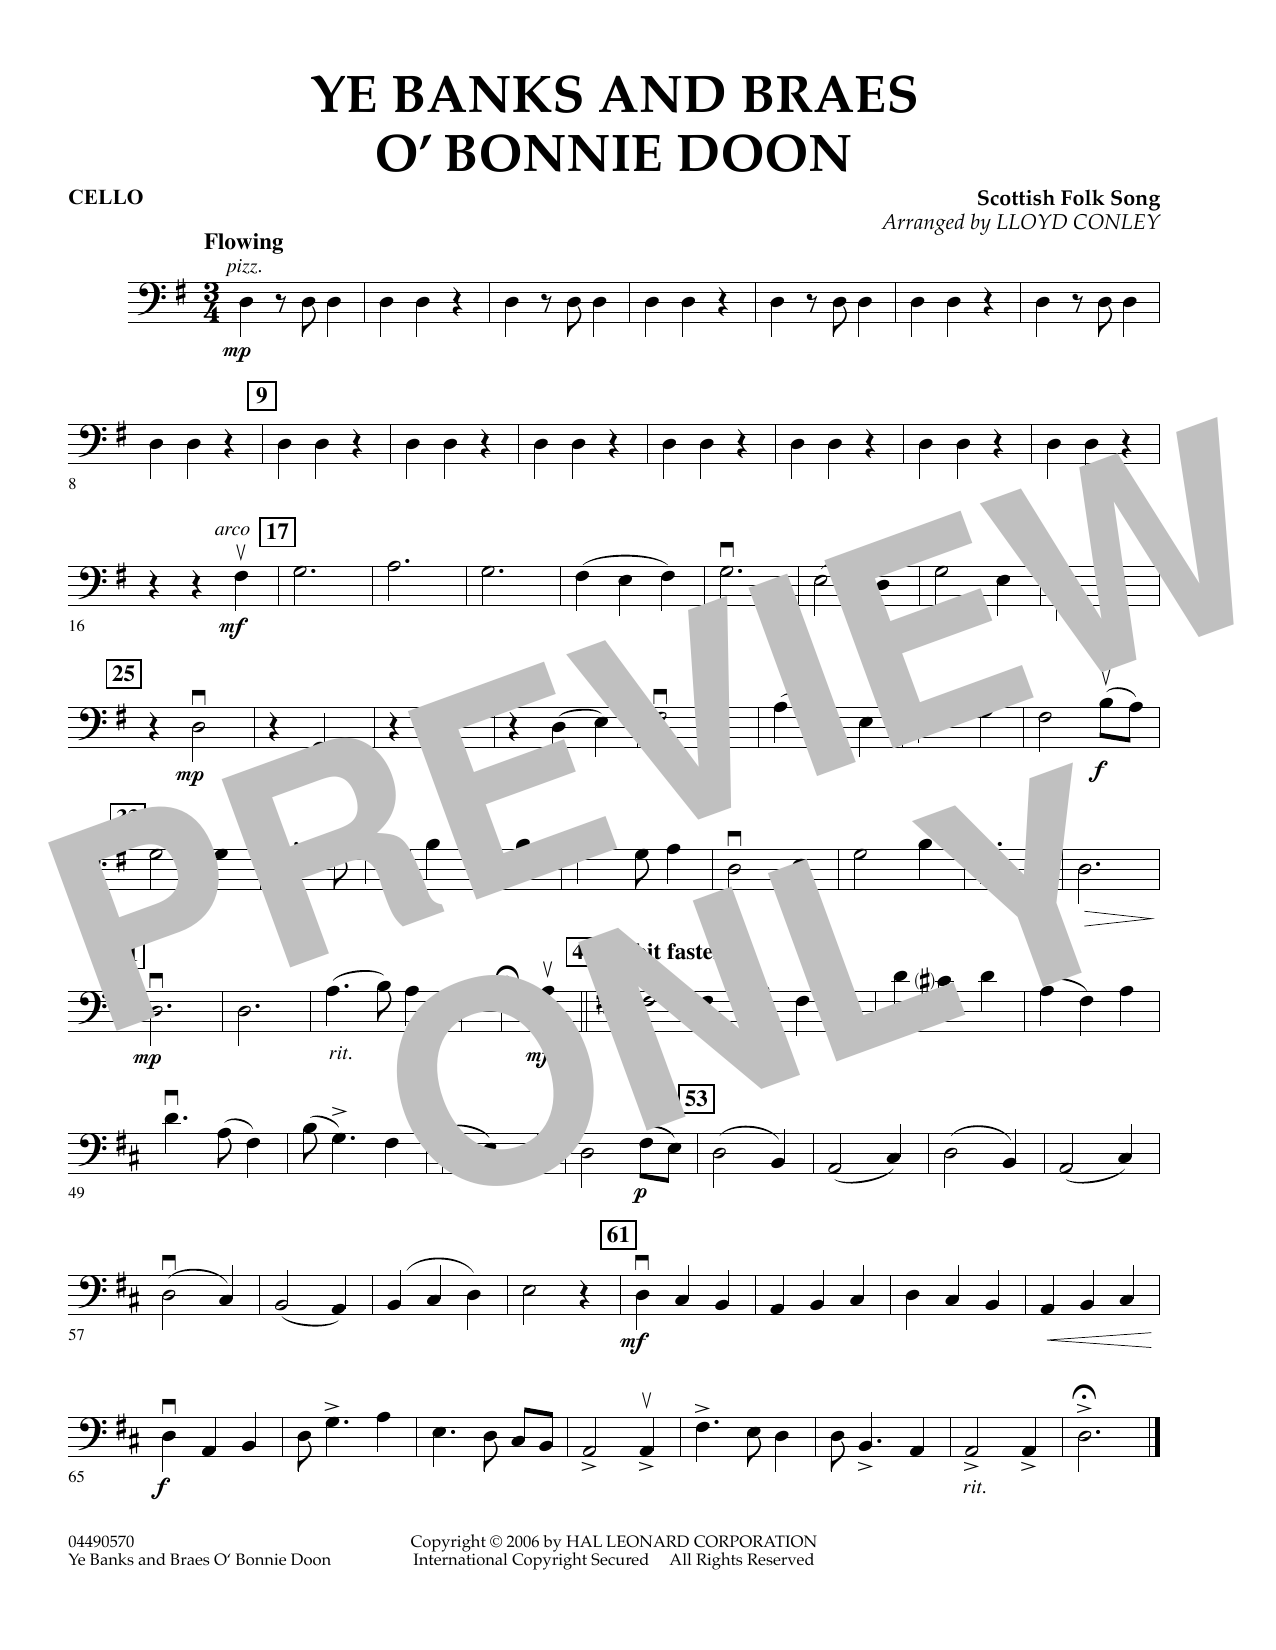 Lloyd Conley Ye Banks and Braes O' Bonnie Doon - Cello sheet music preview music notes and score for Orchestra including 1 page(s)